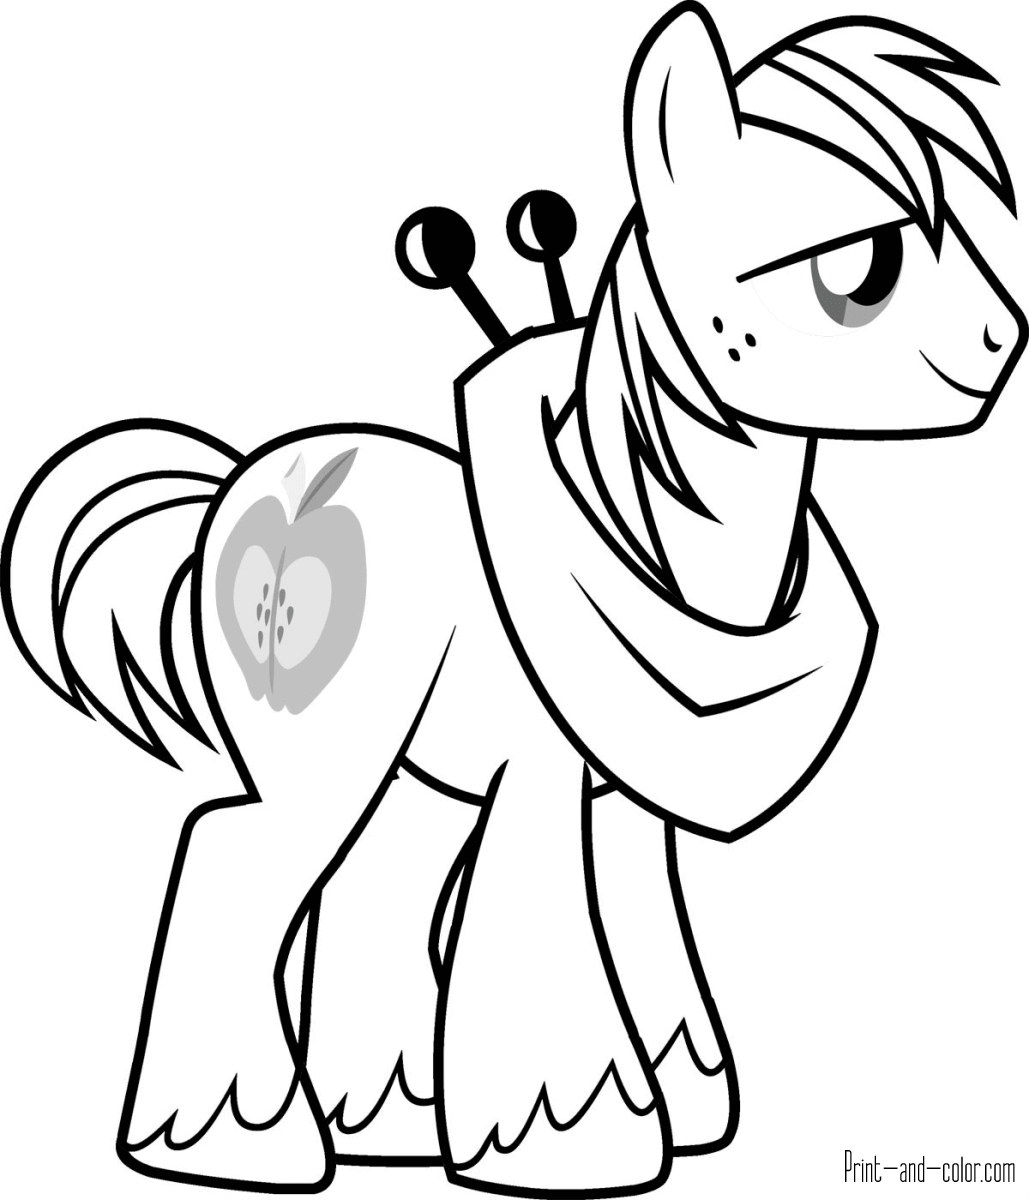 my little pony print and colour my little pony fluttershy coloring pages for kids print pony my little and colour